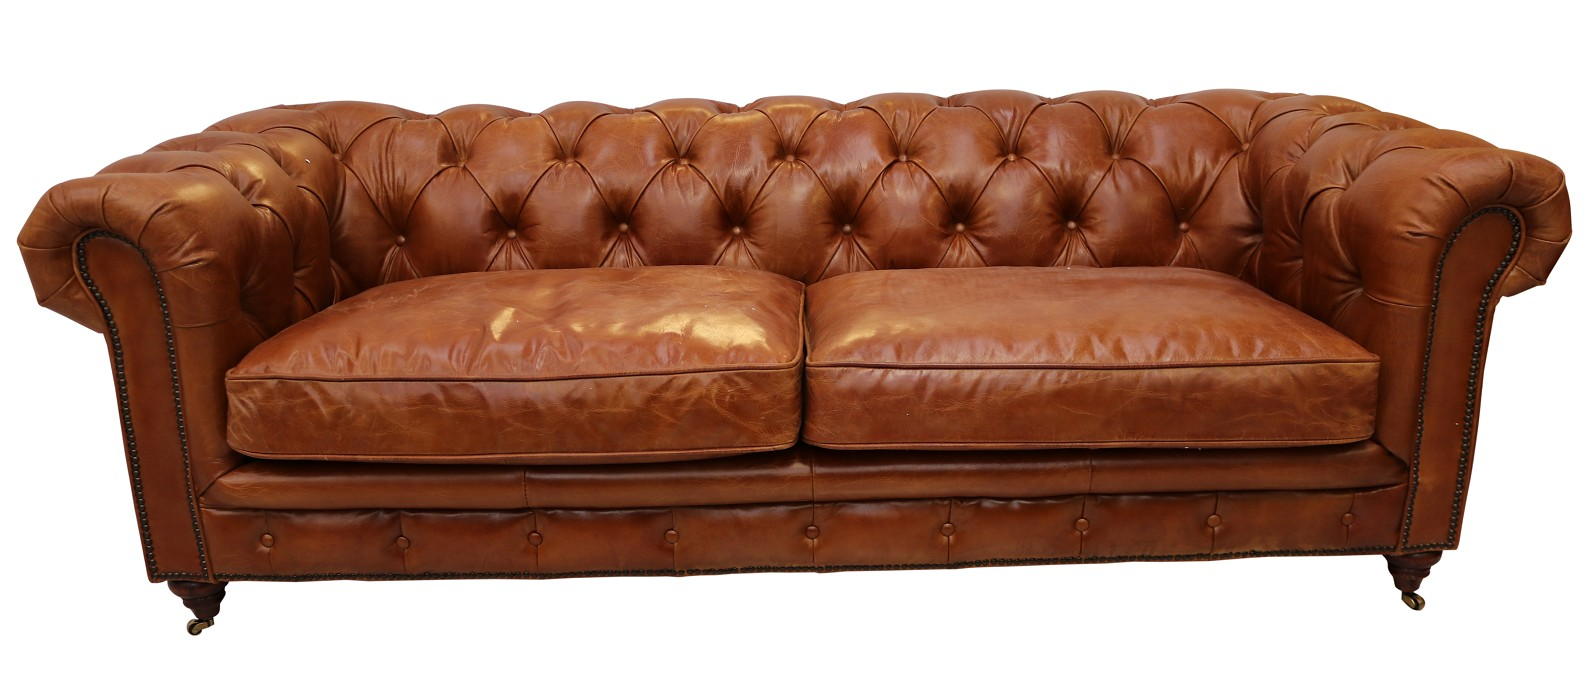 Vintage Distressed Tan Leather Chesterfield 3 Seater Sofa